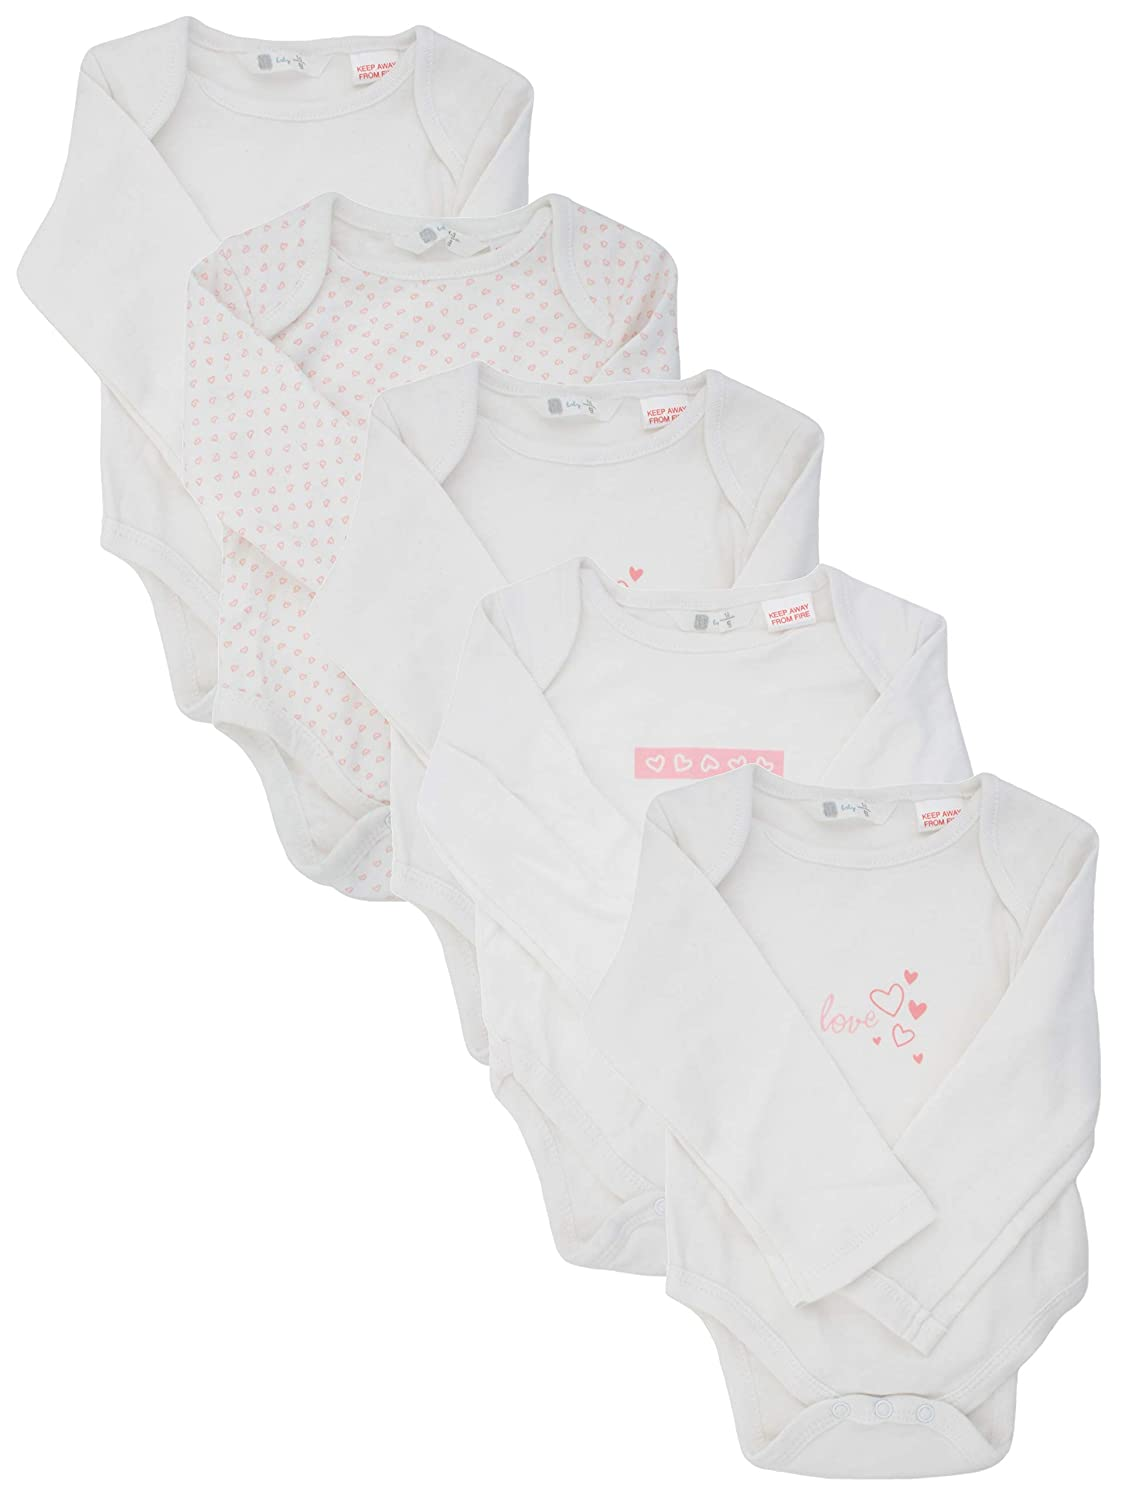 Ex-Store 5 Pack of Baby Long Sleeved Bodysuits